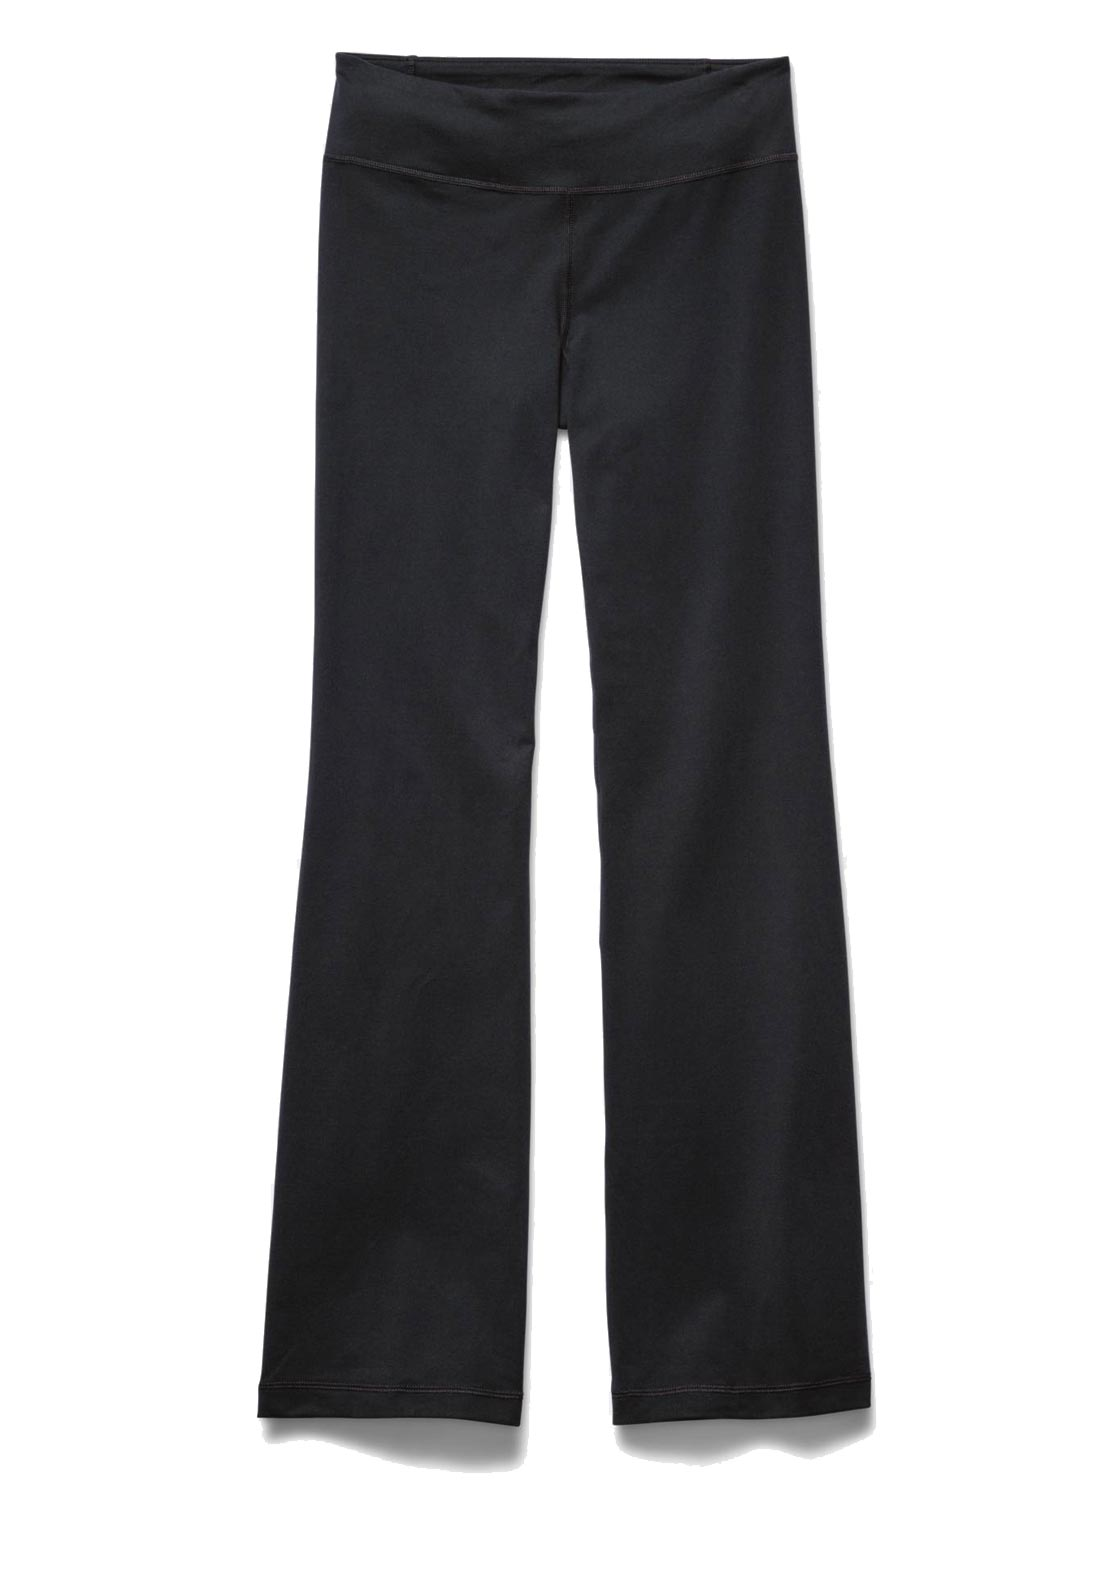 Under Armour Womens UA Perfect Pant Bottoms, Black